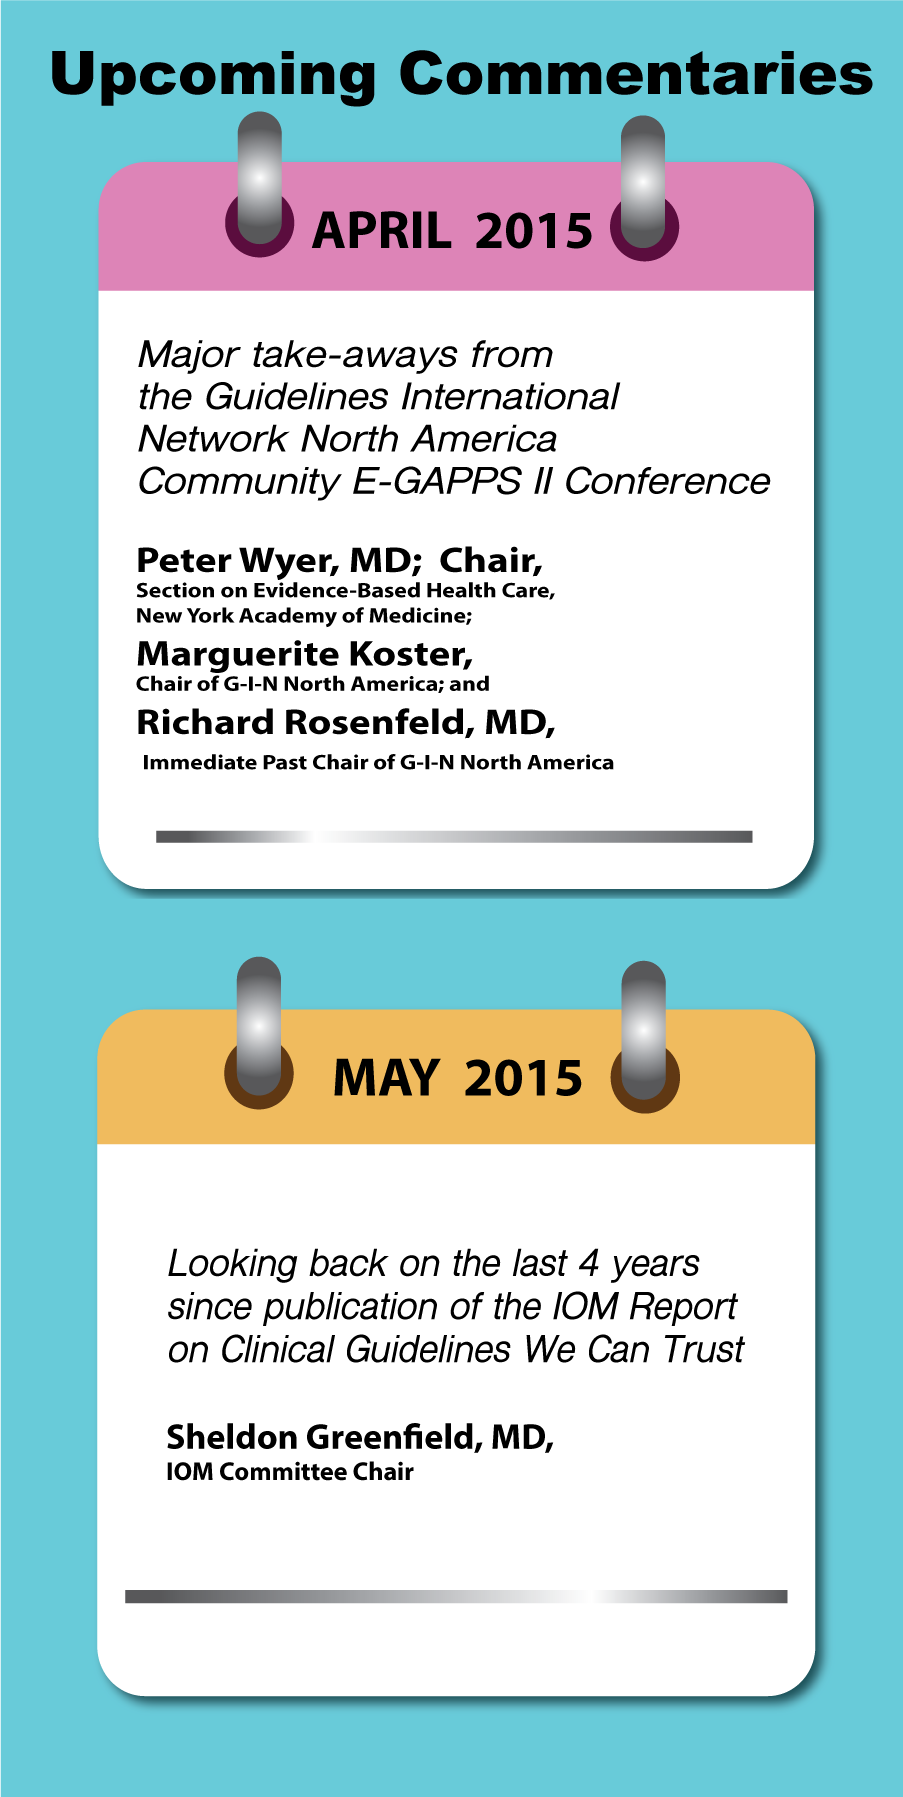 Upcoming Commentaries: April-Major take-aways from the Guidelines International Network North America Community E-GAPPS II Conference by Peter Wyer, MD et al.| May-Looking back on the last 4 years since publication of the IOM Report on Clinical Guidelines We Can Trust by Sheldon Greenfield, MD